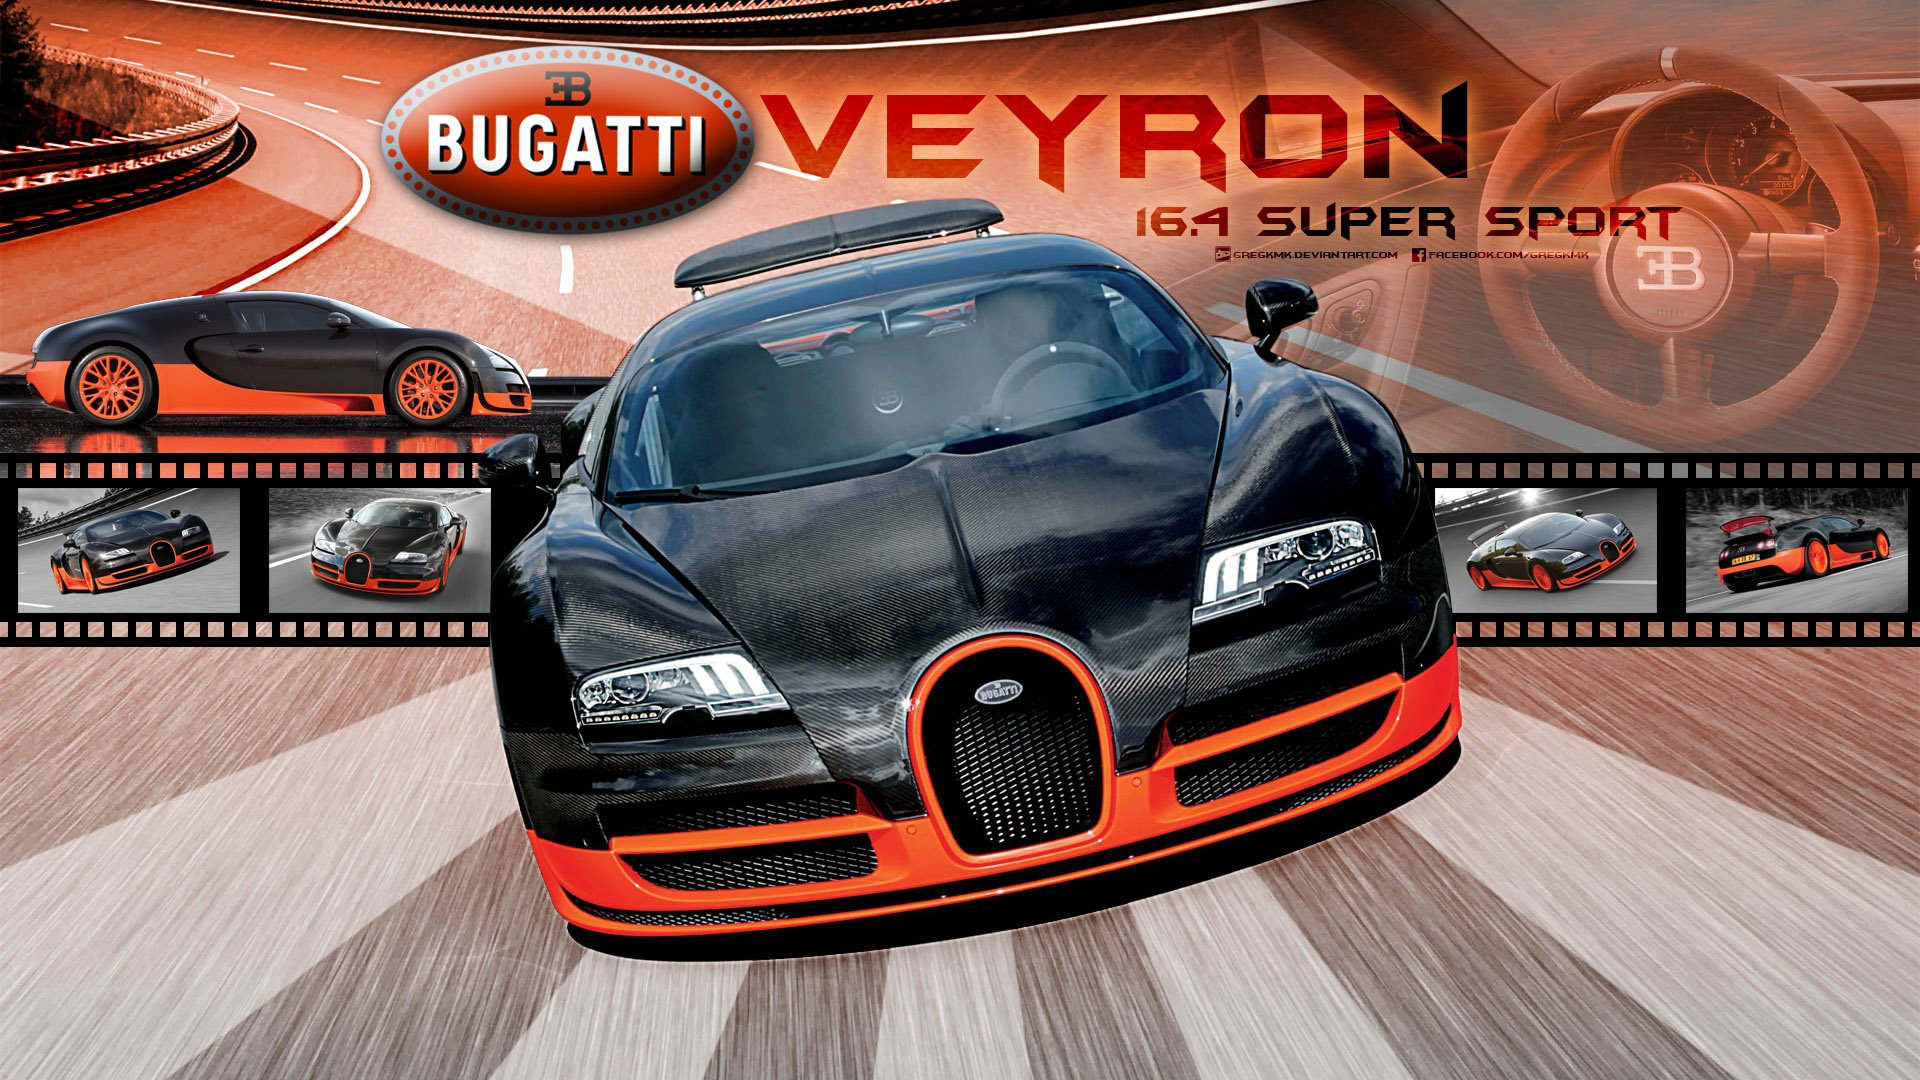 Bugatti Veyron Super Sport Wallpaper Mobile: Bugatti_Veyron_Super_Sport HD Wallpaper